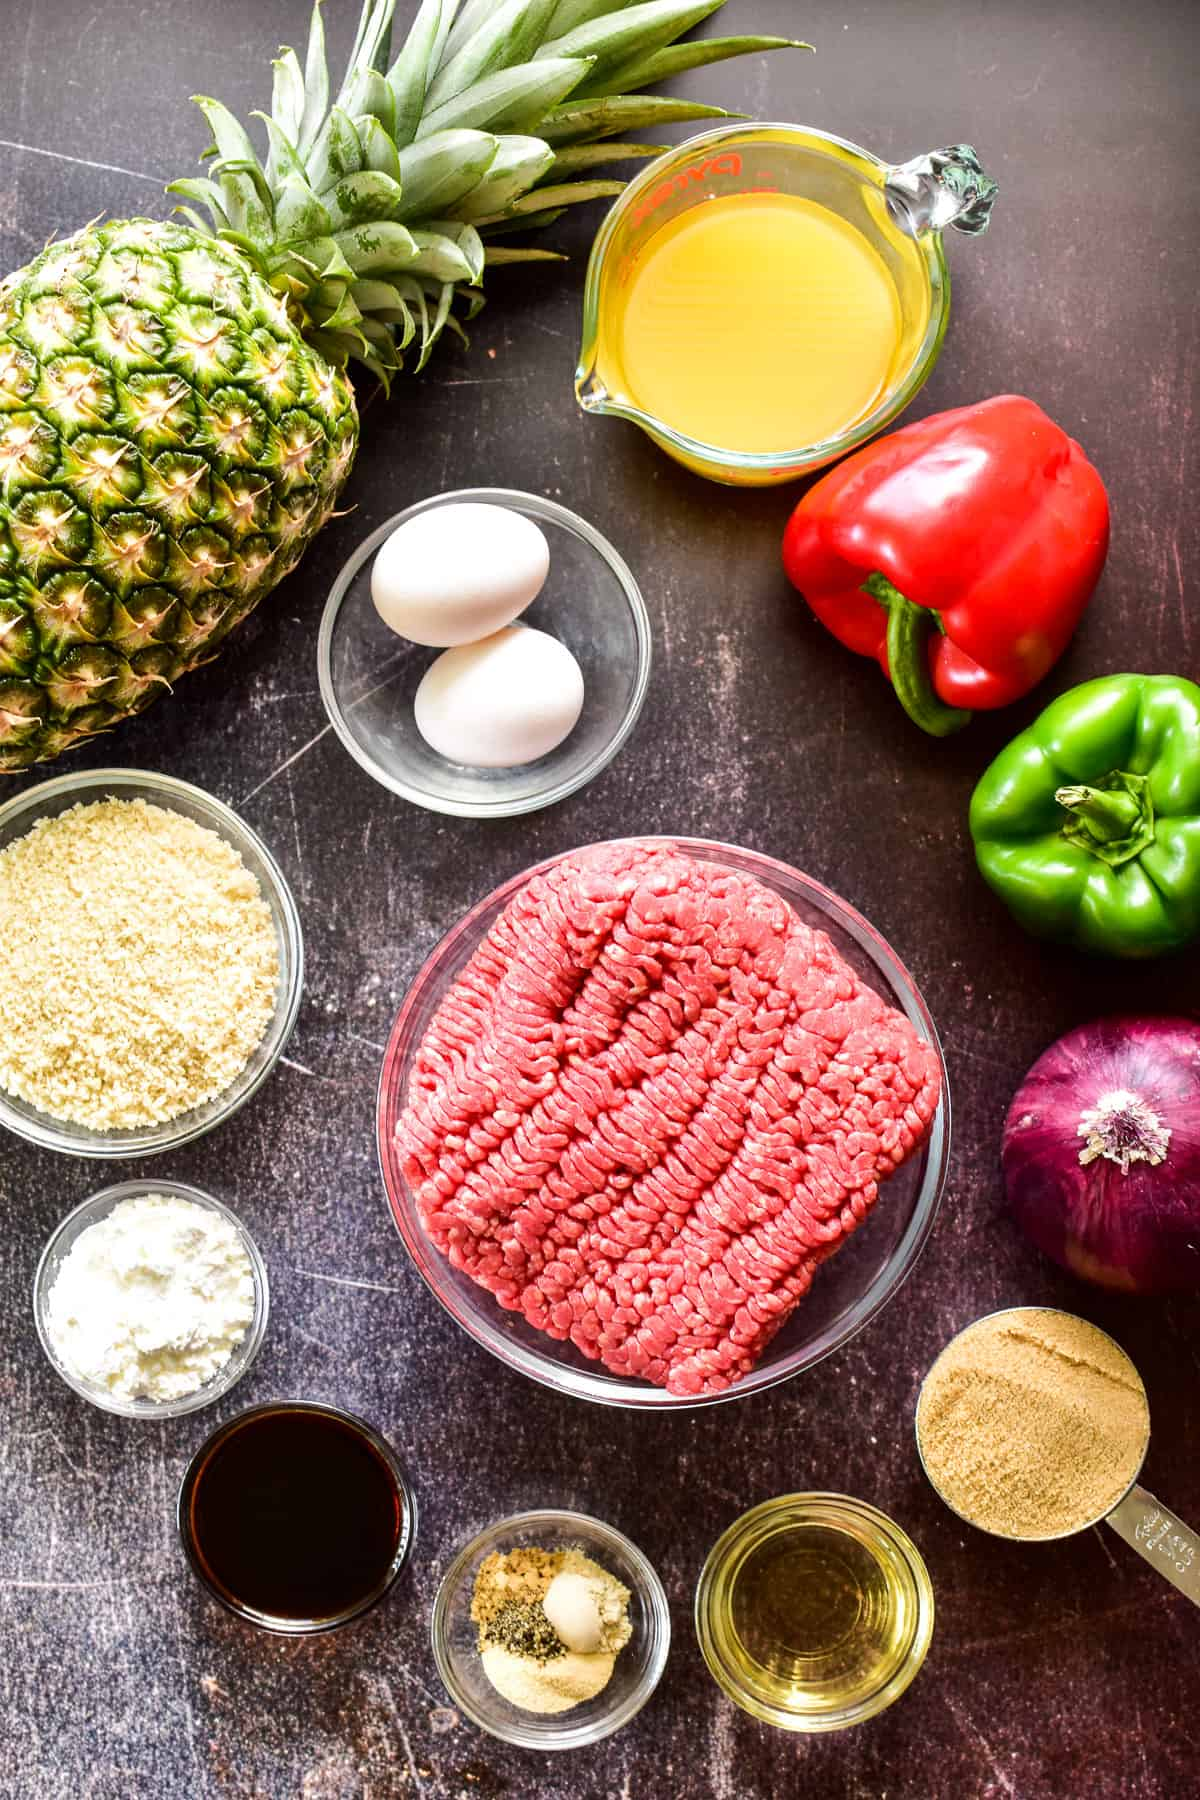 Hawaiian Meatball ingredients